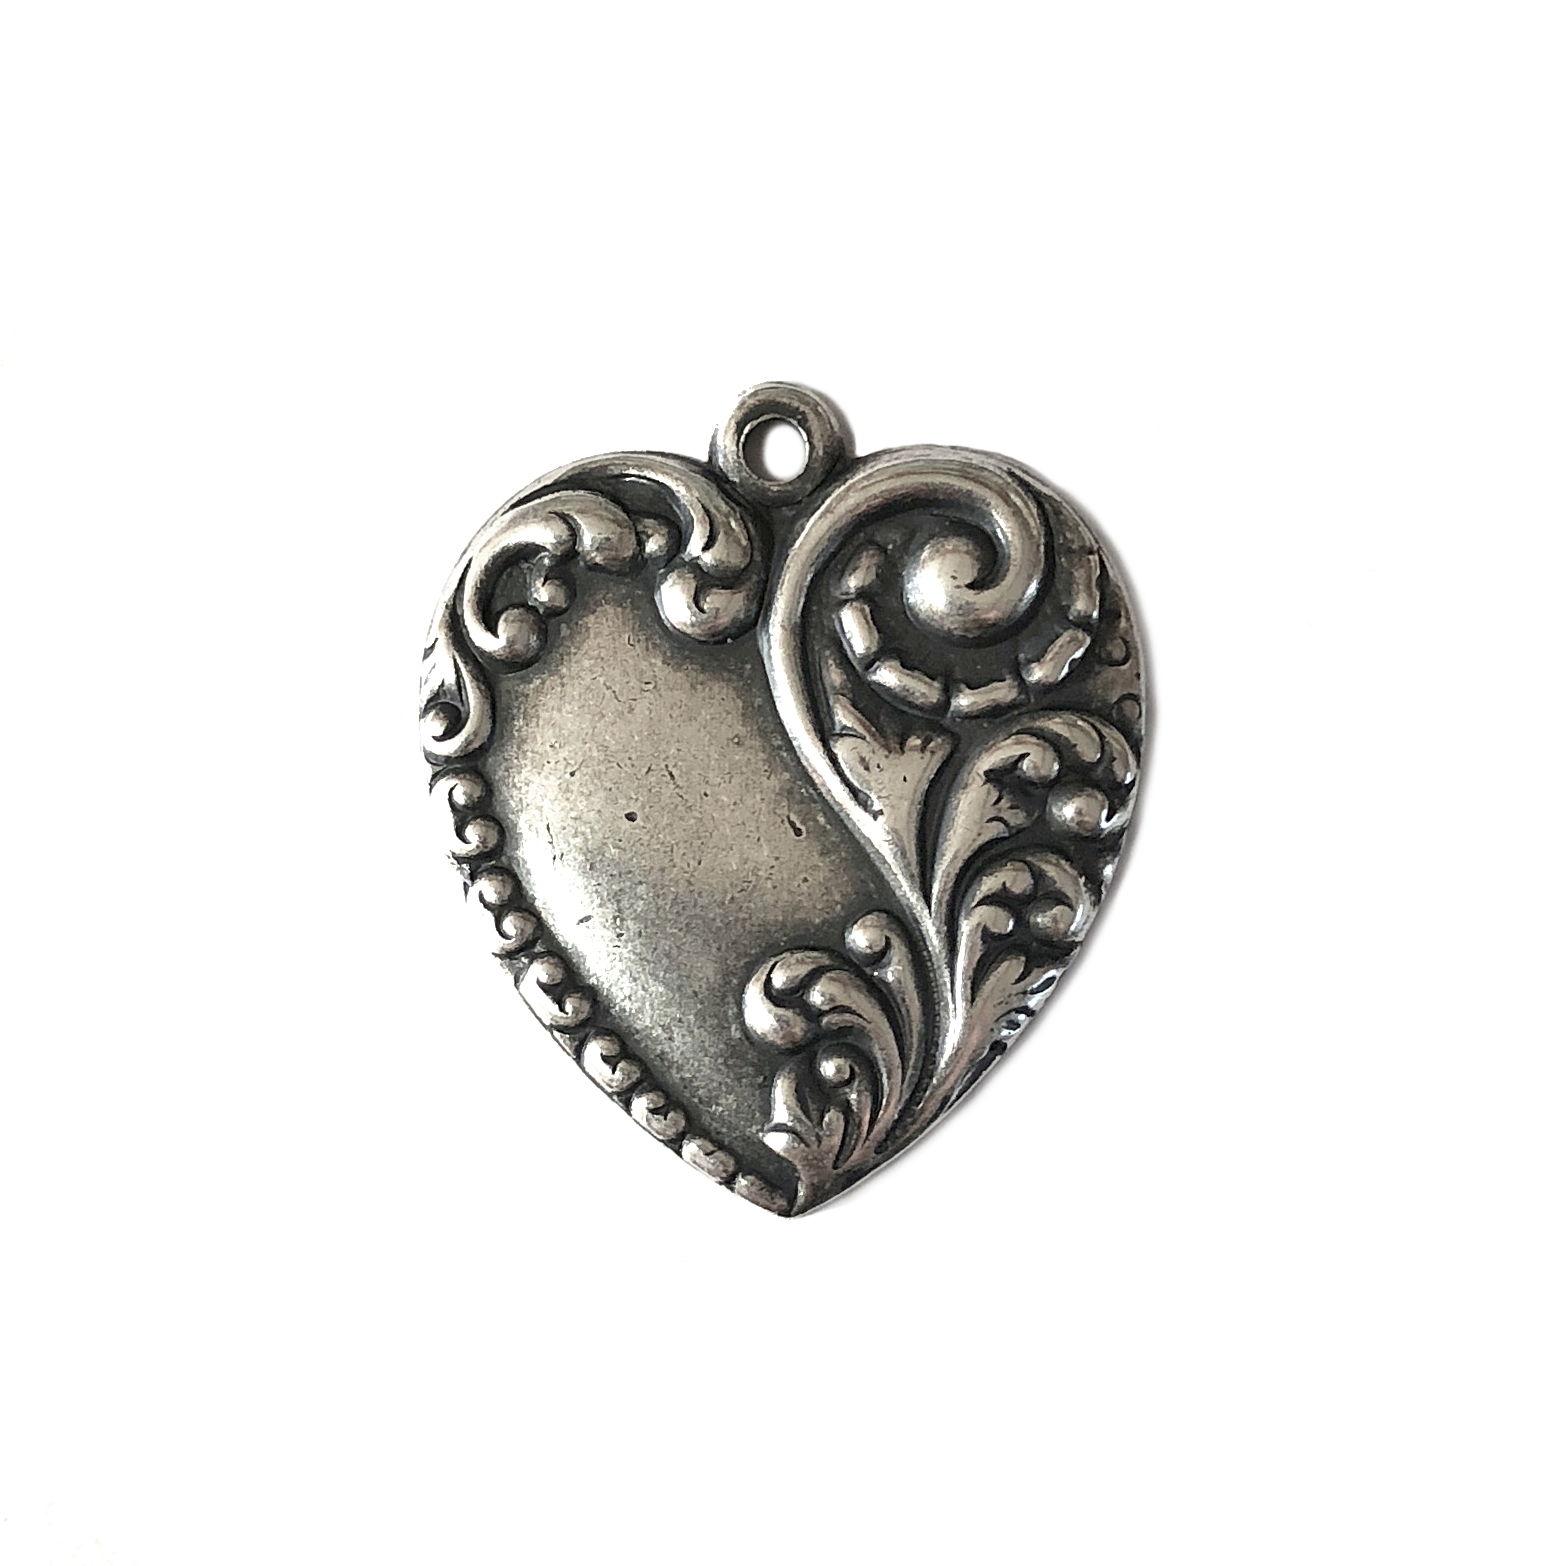 elegant victorian heart charm, silverplate, silverware, charm, heart charm, heart, floral, floral heart, 28x24mm, victorian, antique silver, us made, nickel free, B'sue Boutiques, jewelry making, vintage supplies, jewelry supplies, jewelry findings, 01023